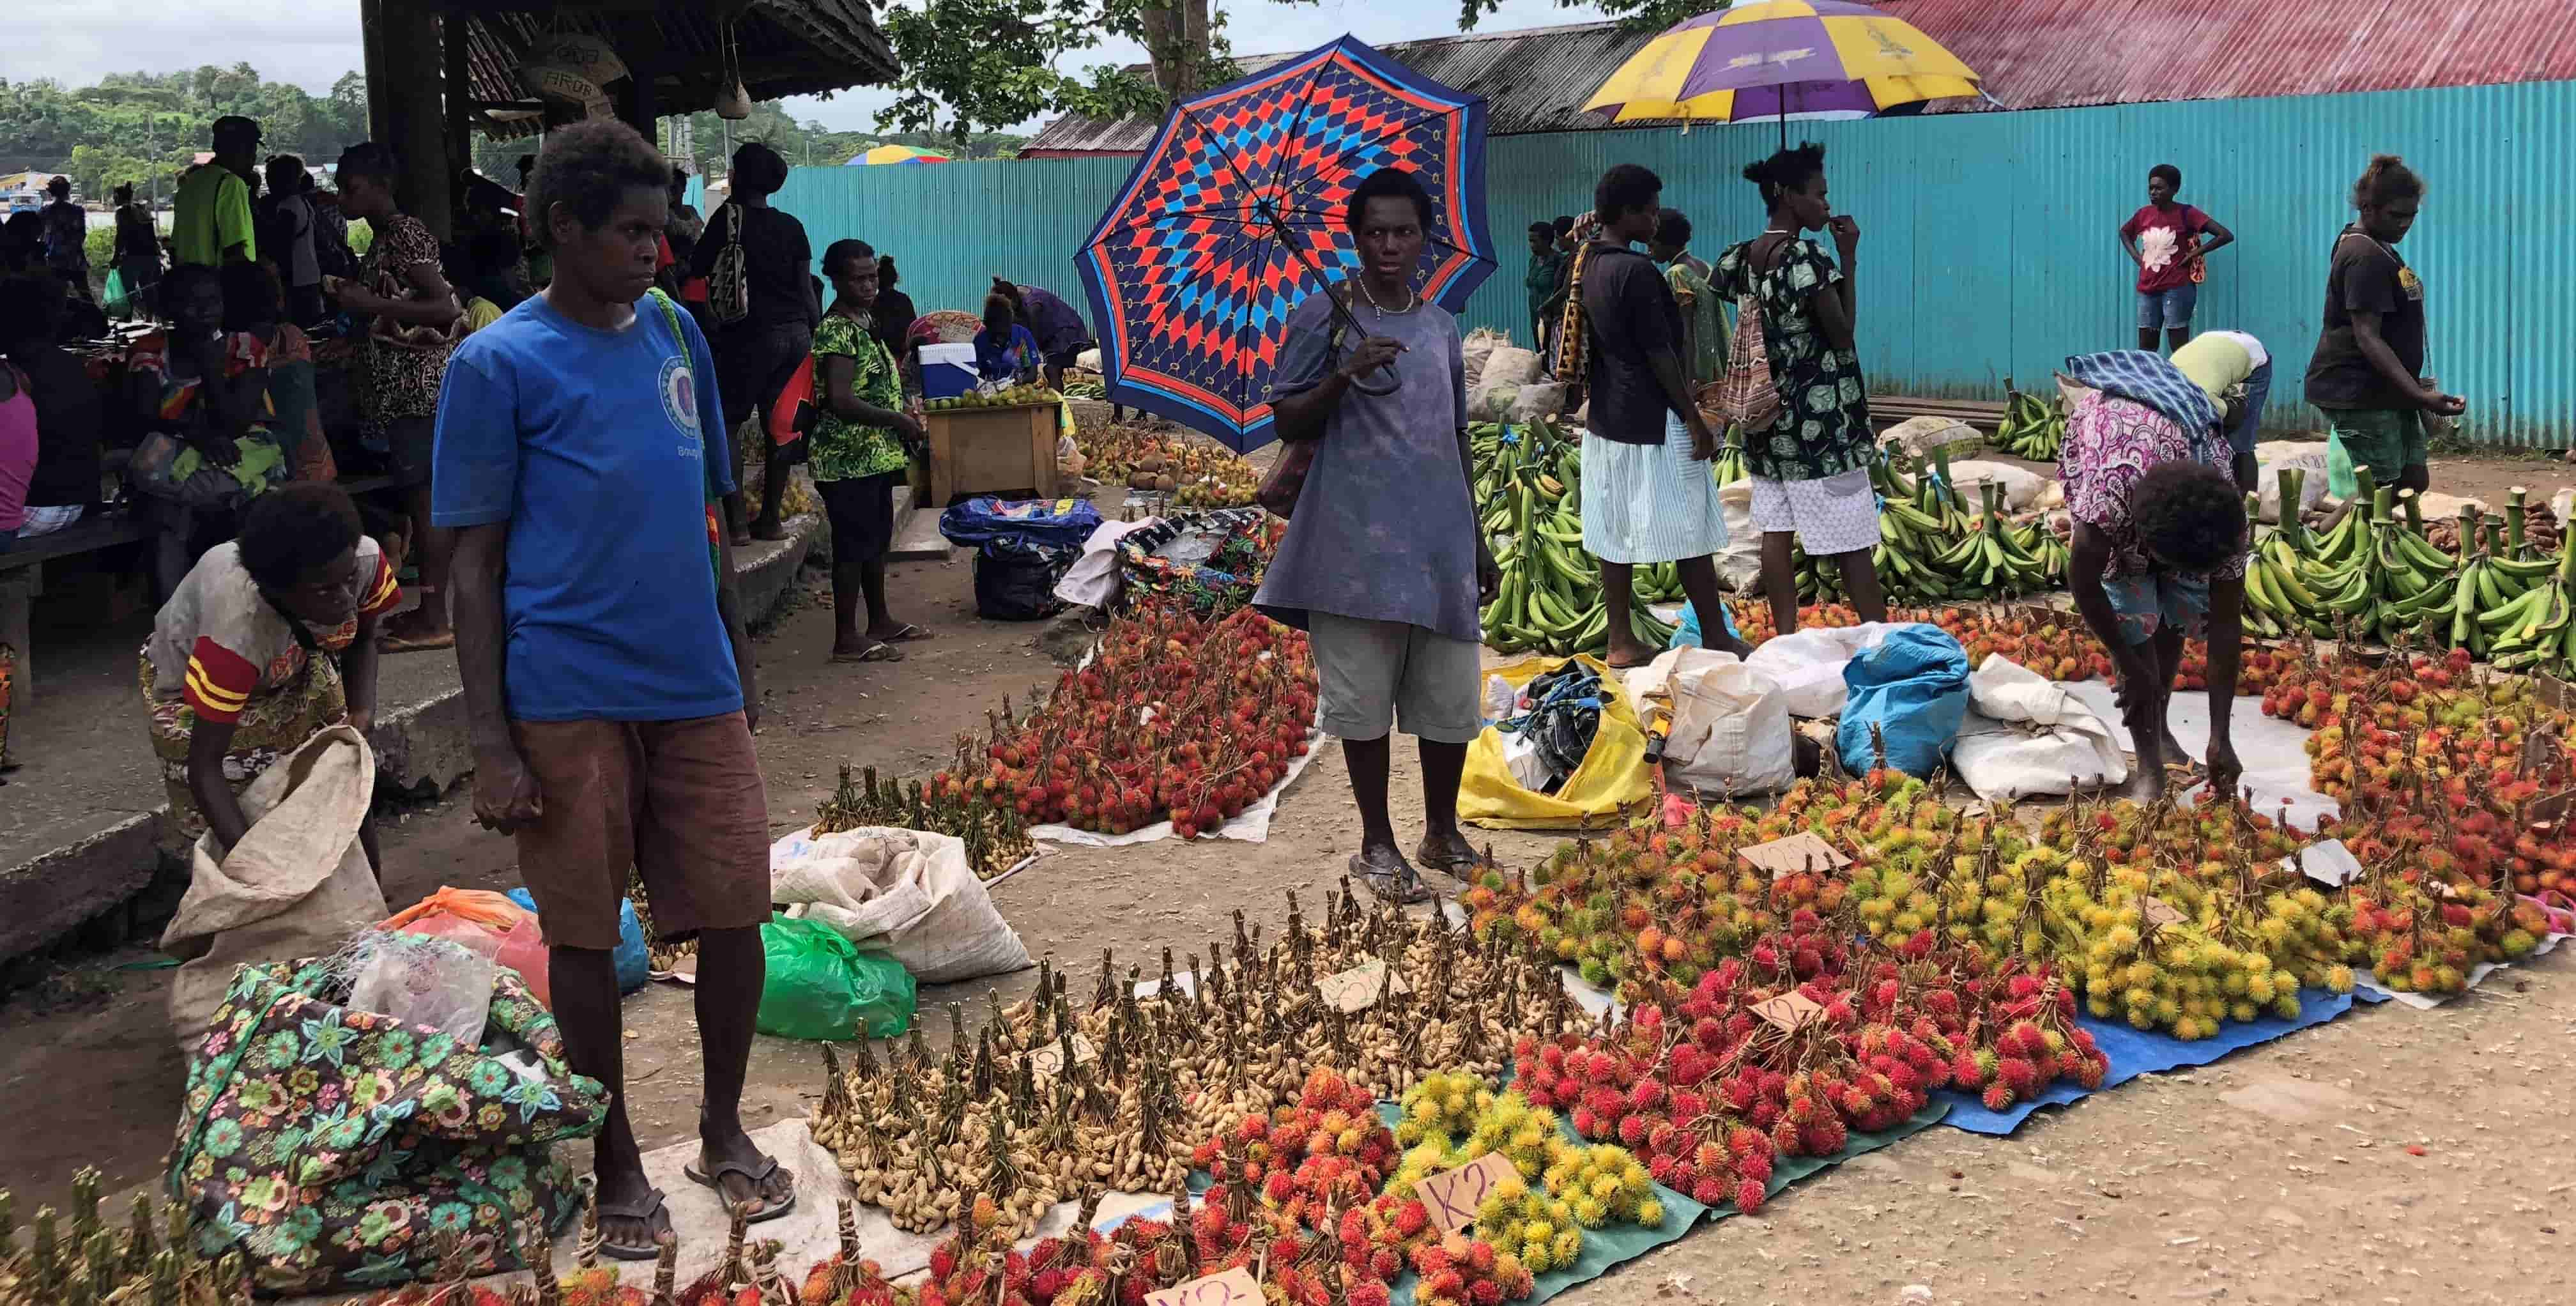 Market in Buka, Bougainville. (Photo: Nicole George)